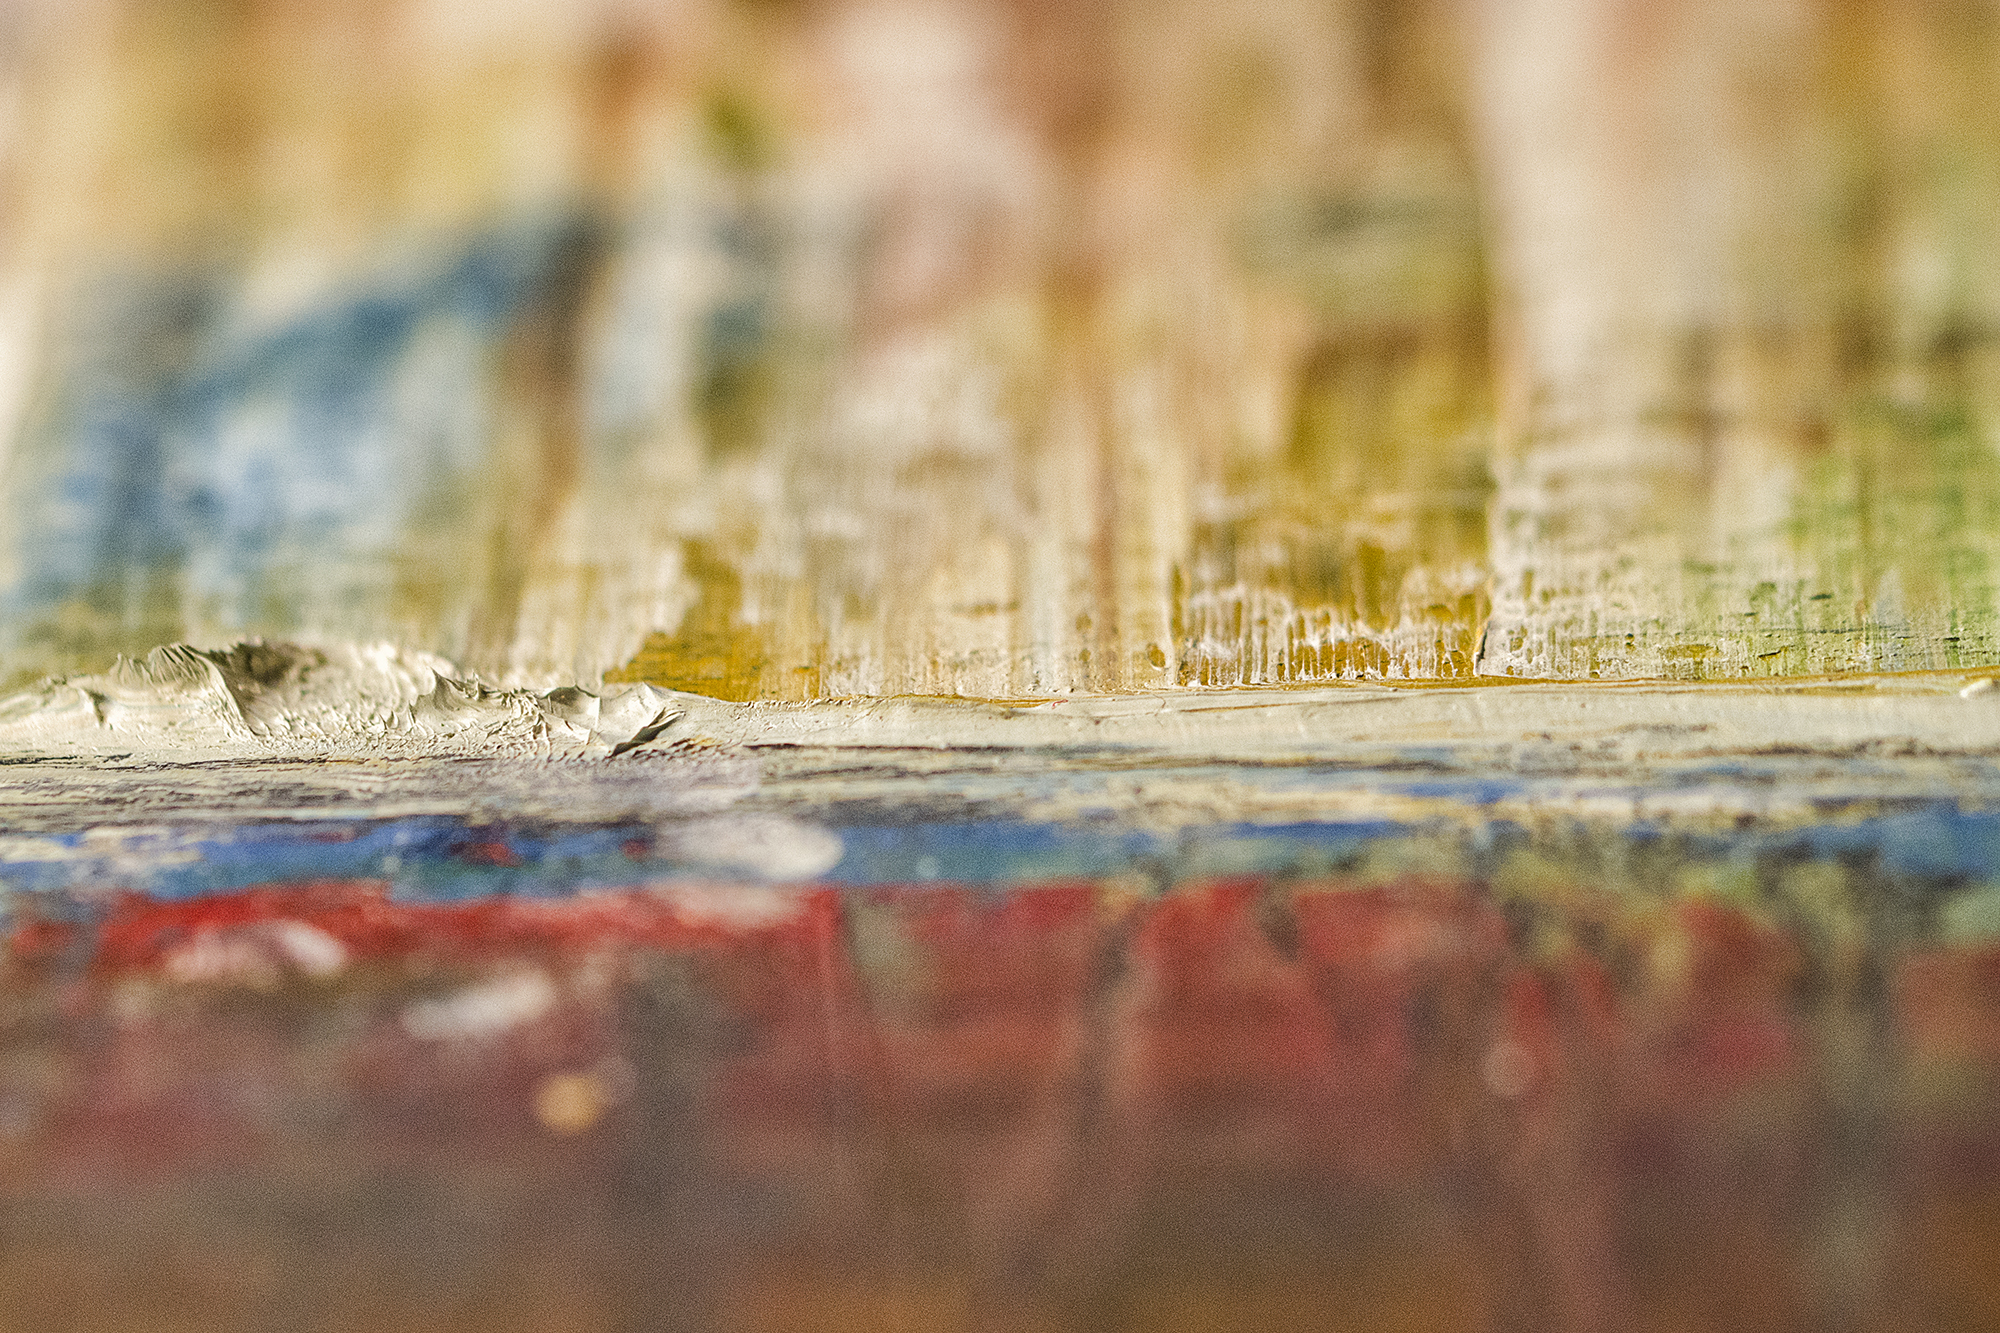 dfall-abstractionpicturale-05